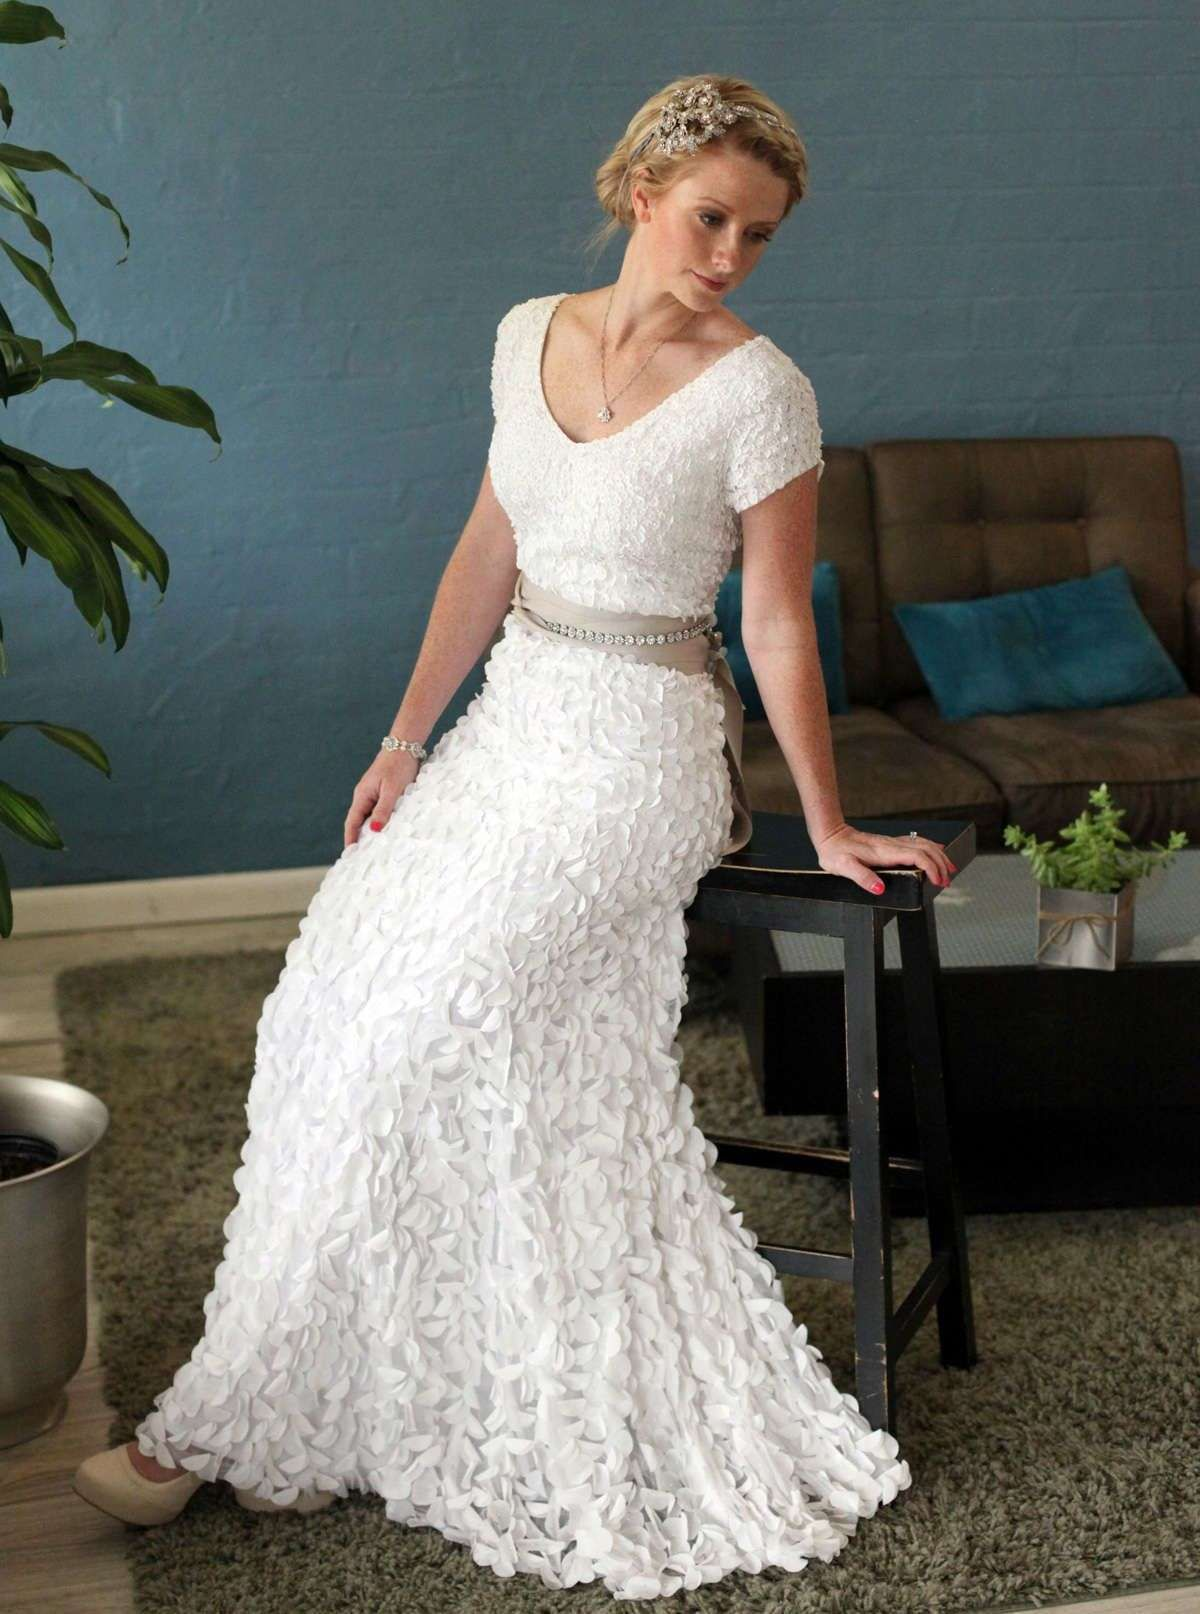 2nd wedding dresses older bride 1080p hd pictures for Older brides wedding dresses